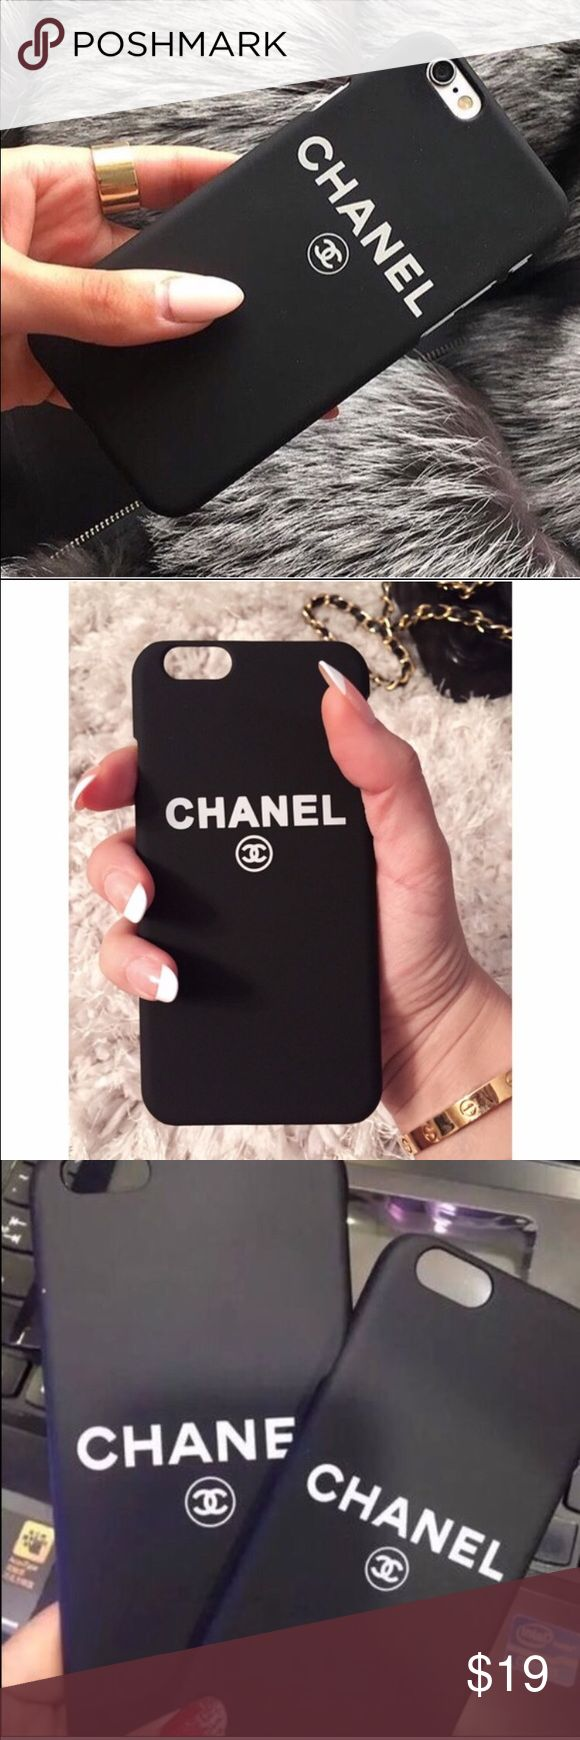 Black Chanel phone case iphone 7 plus Brand new black hard rubber case phone case for iphone 7 plus. Offers welcome No trade Accessories Phone Cases